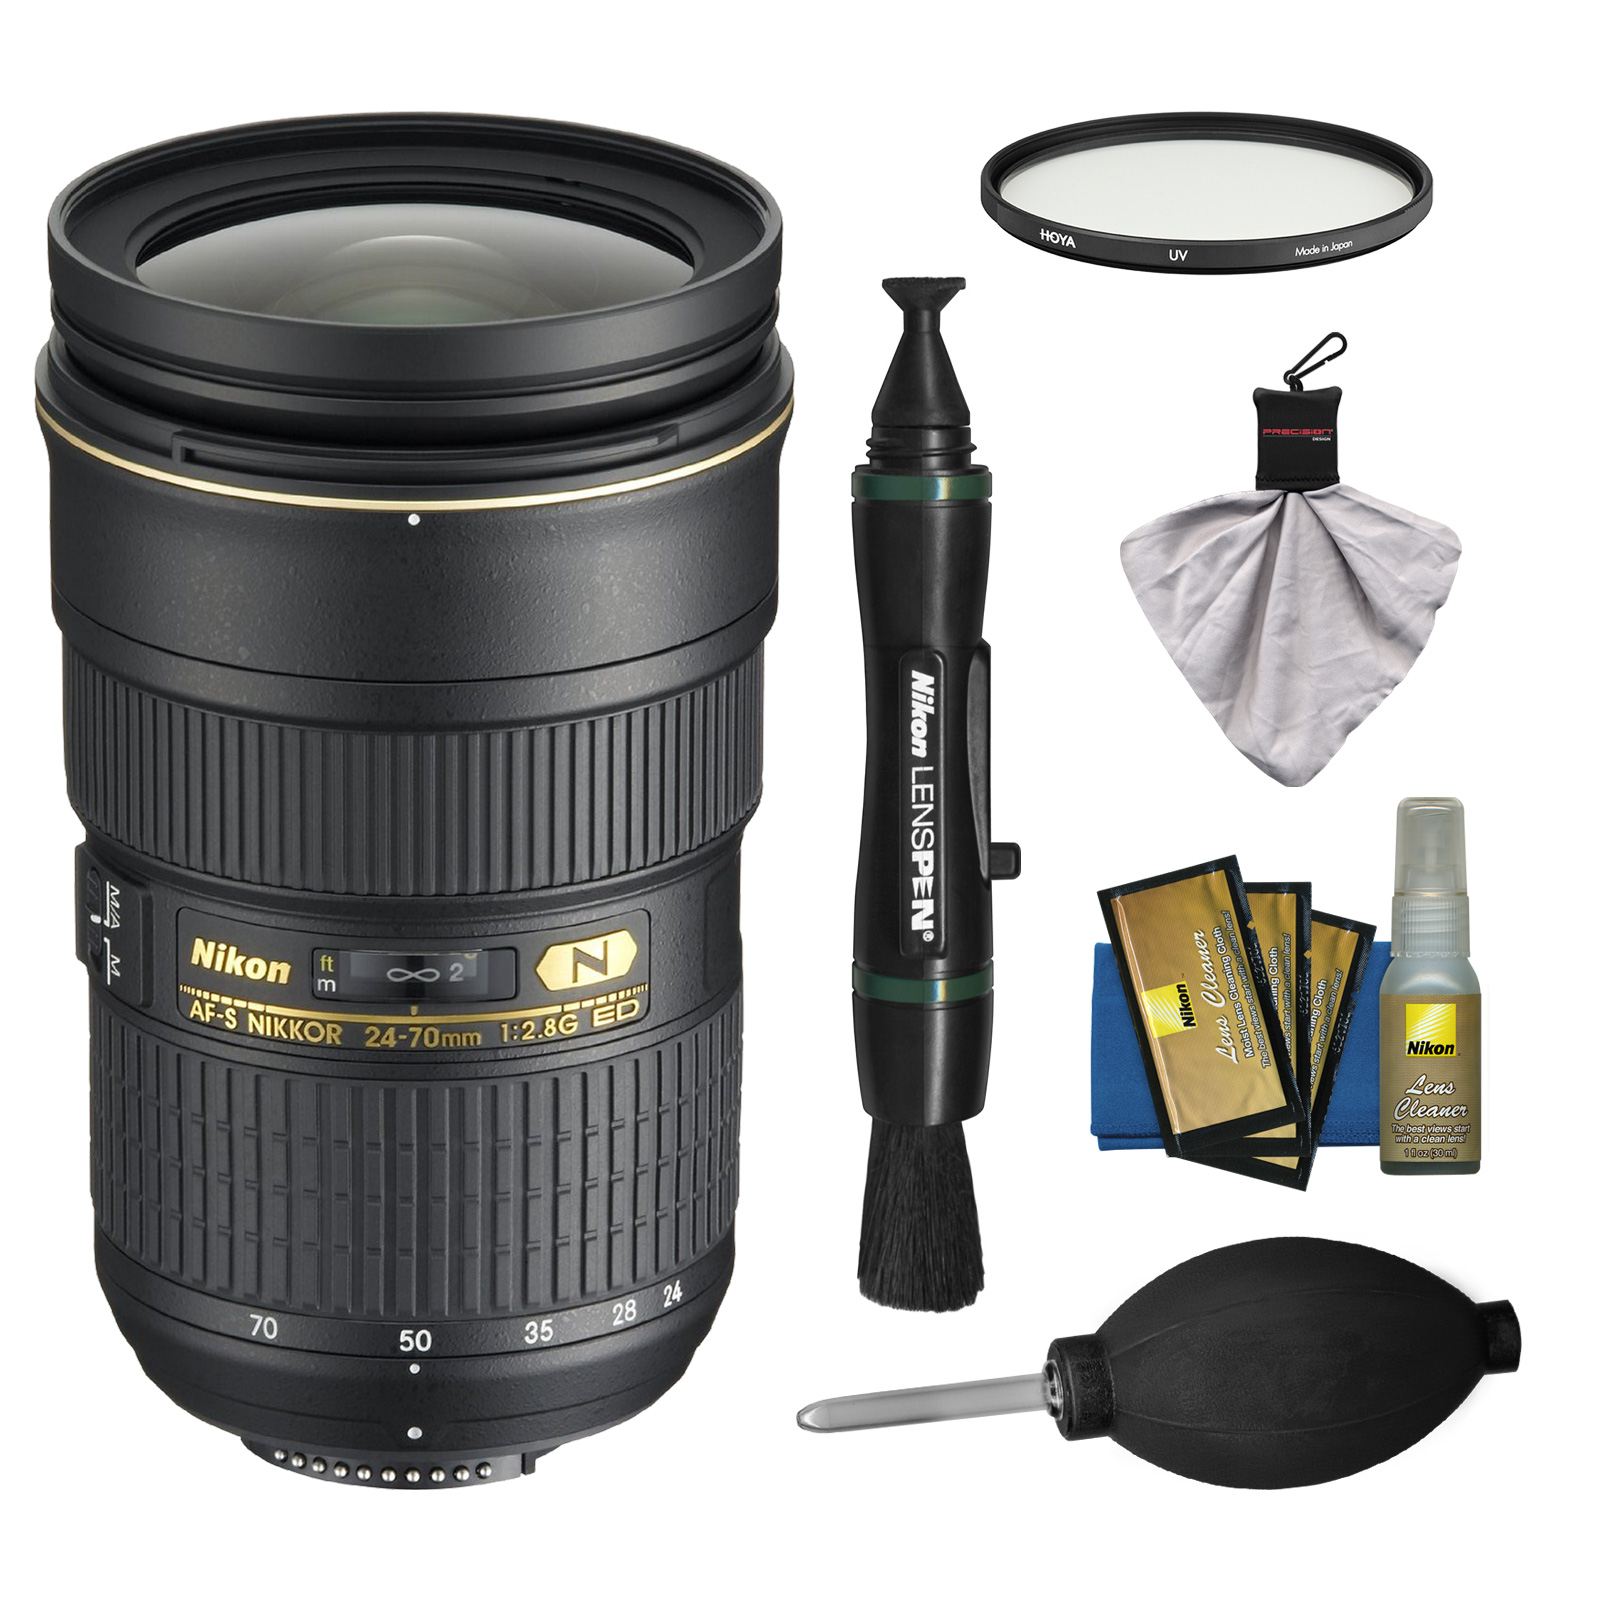 Nikon 24-70mm f/2.8G AF-S ED Zoom-Nikkor Lens with Hoya NXT UV Filter + Kit for D3200, D3300, D5300, D5500, D7100, D7200, D750, D810 Cameras